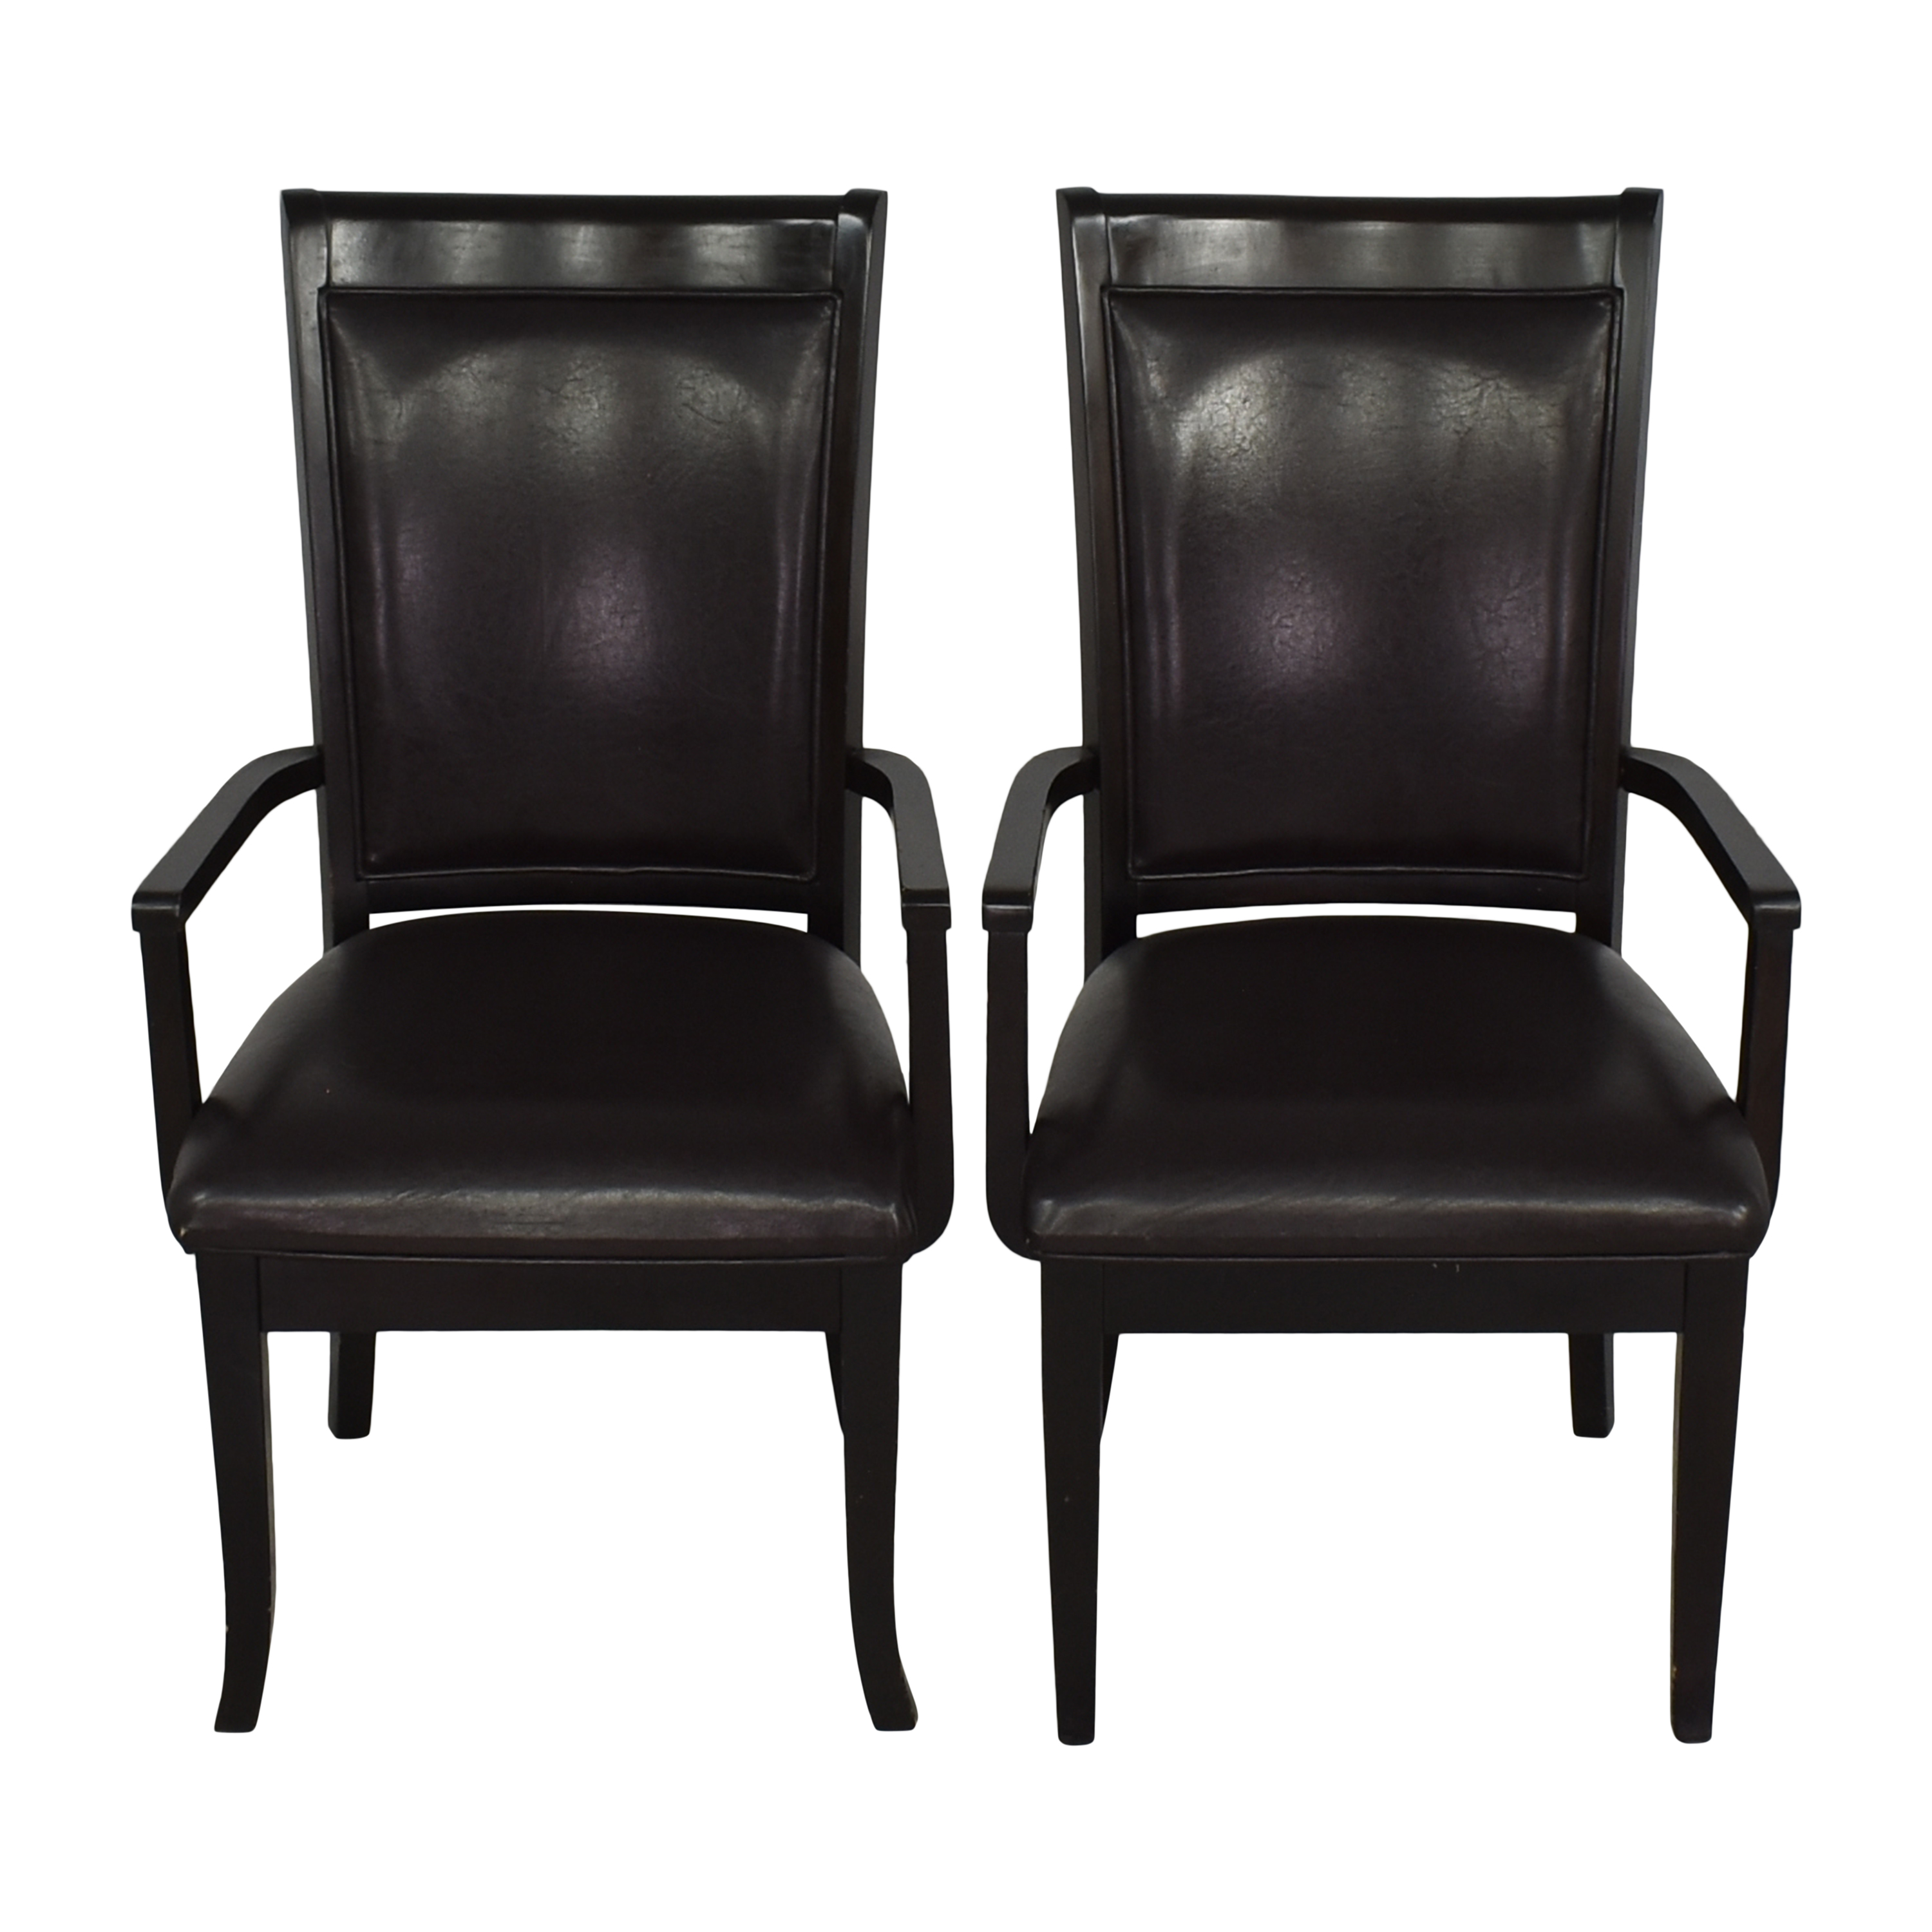 Poundex Poundex Dining Arm Chairs for sale